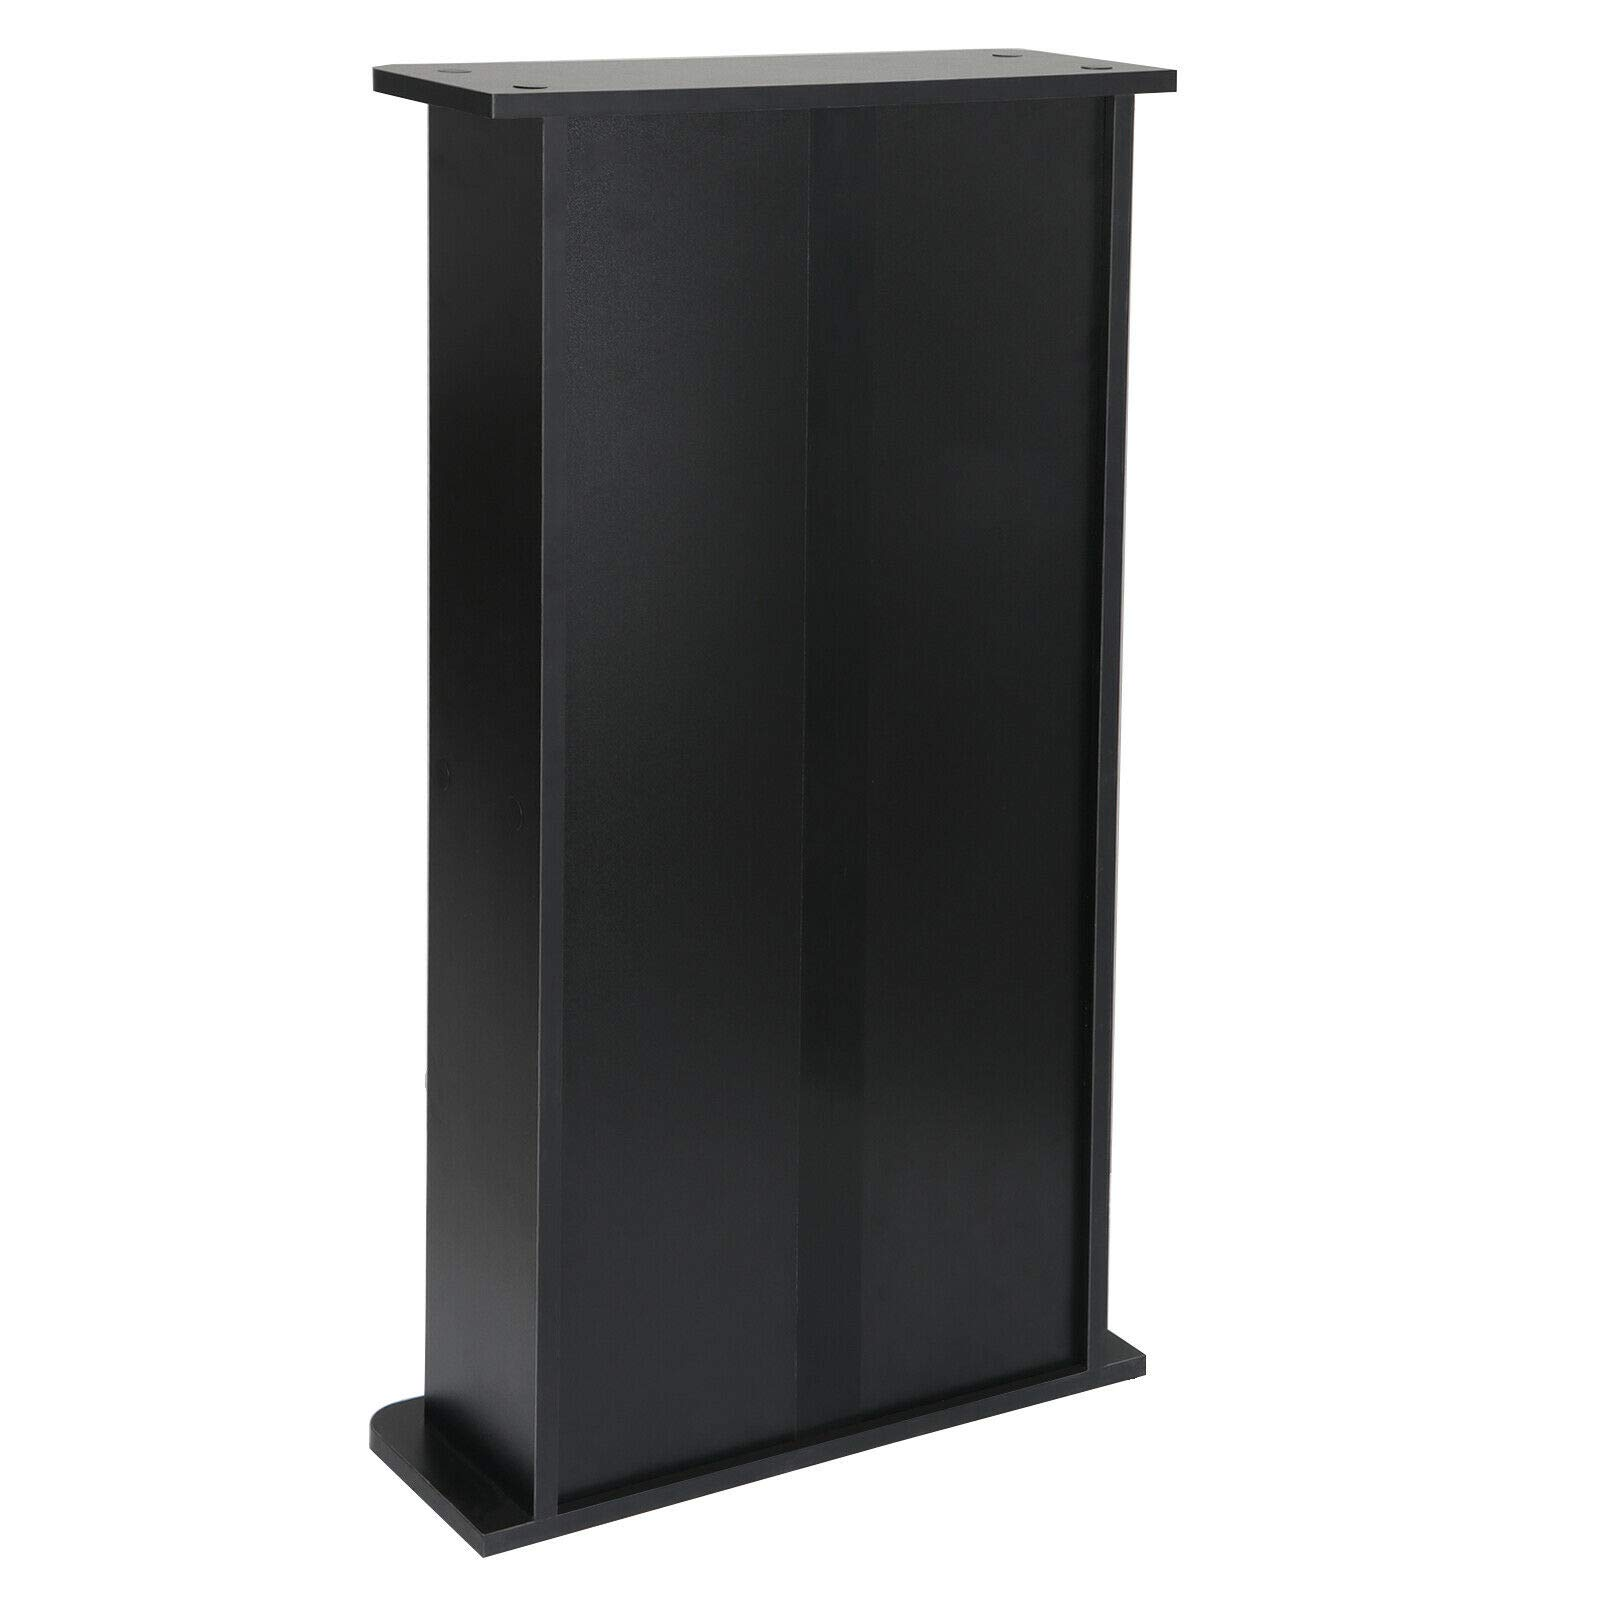 PloybeeShop Height DVD CD This Media Cabinet Storage Adjustable 5 Layers Stand Free Standing 36'' by PloybeeShop (Image #9)